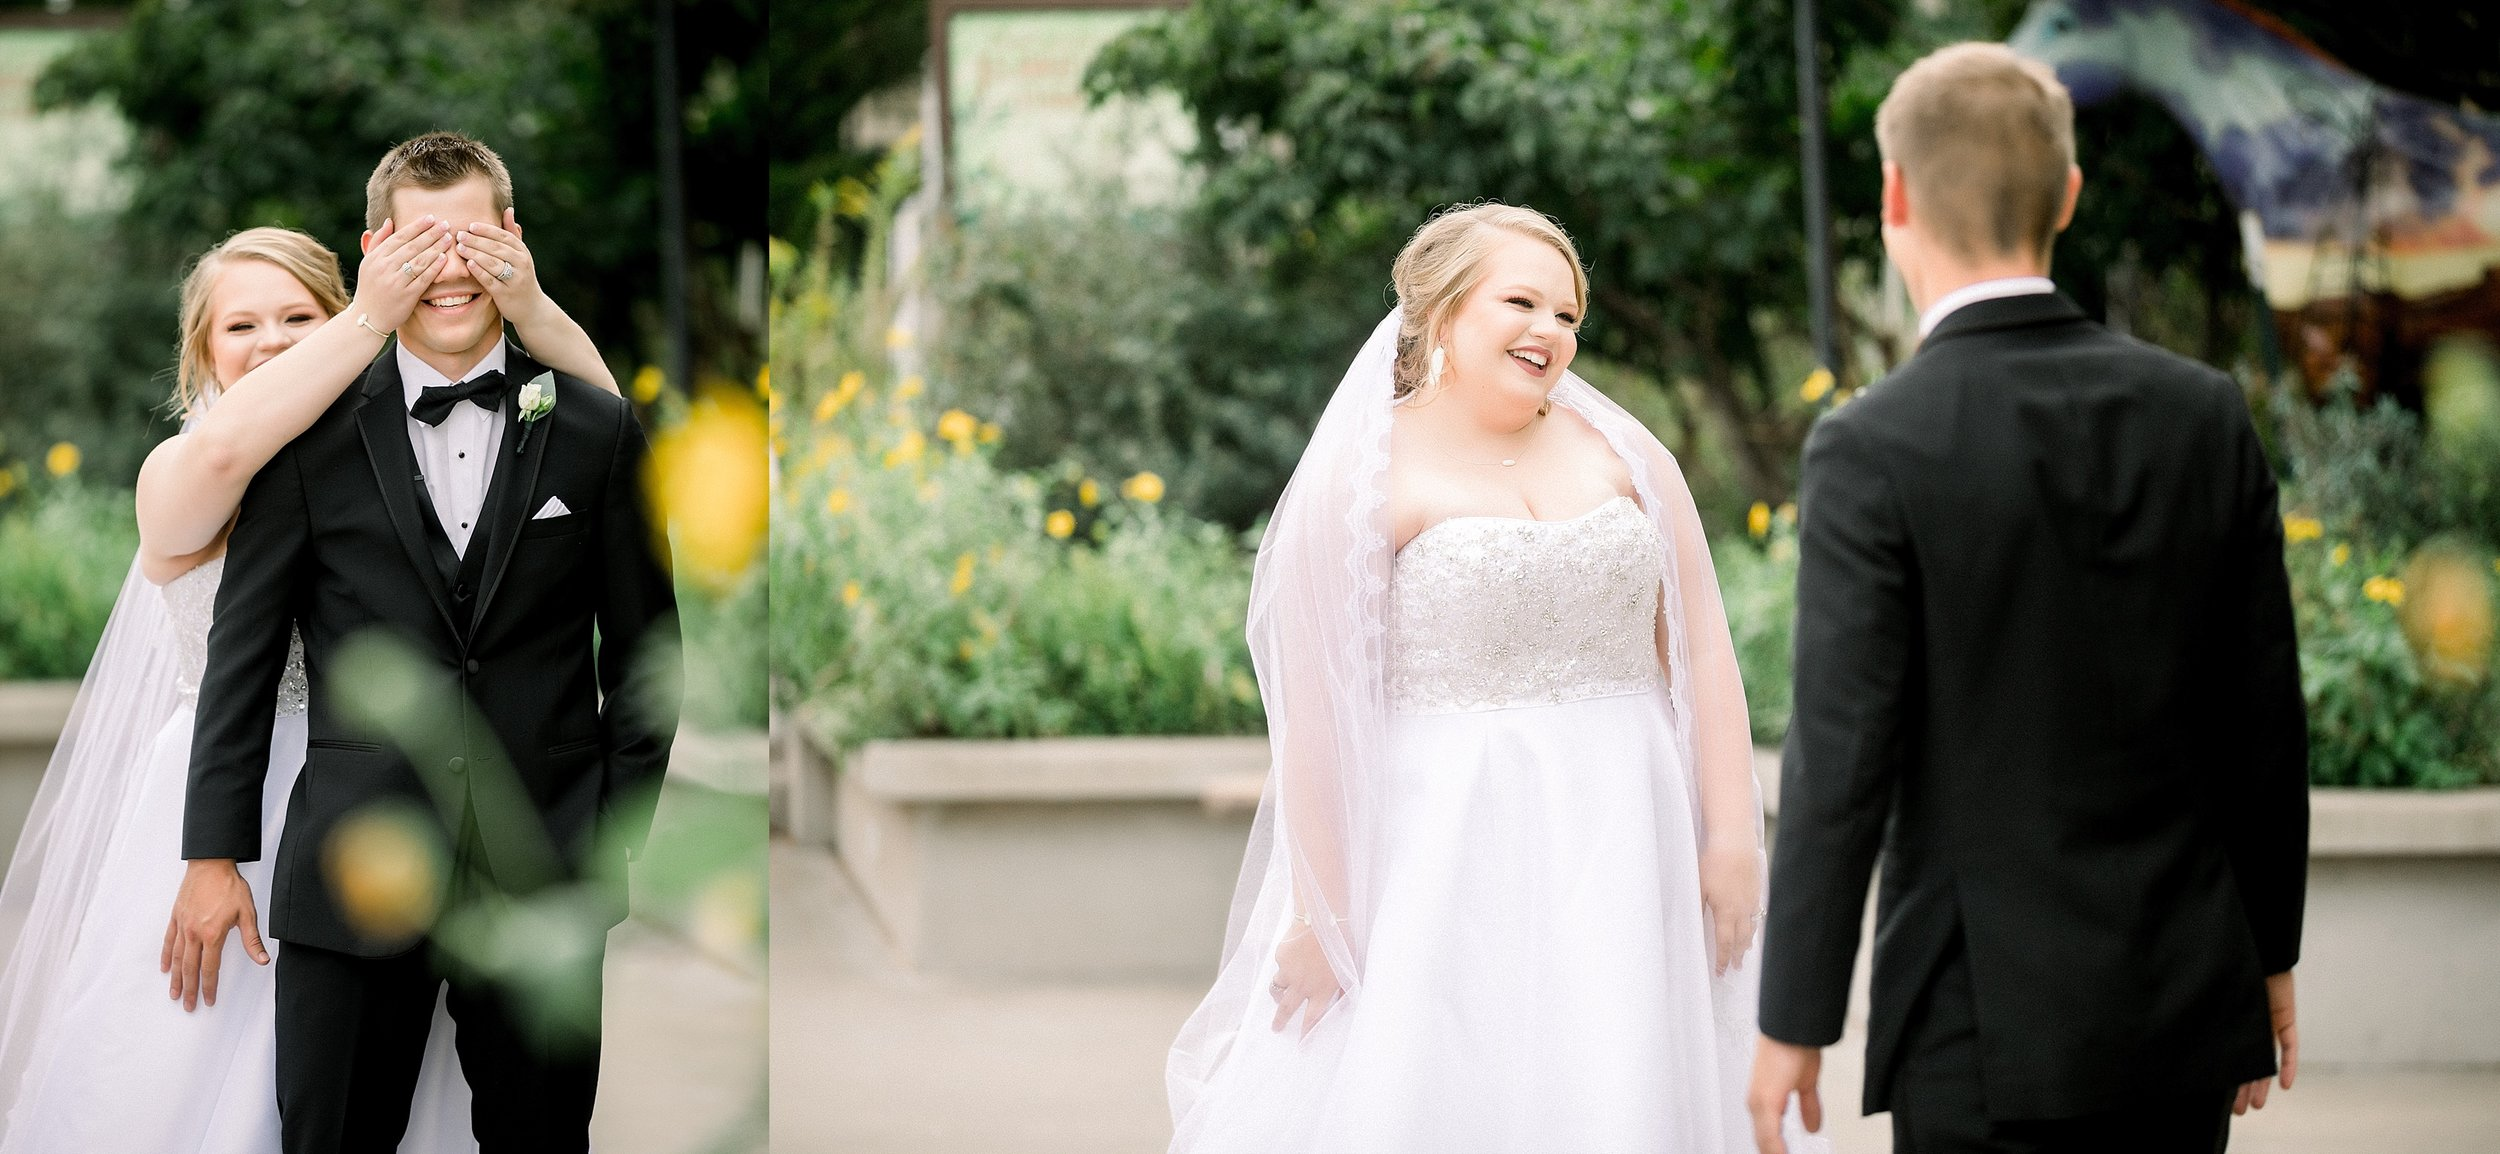 Ryanne-and-william-wedding-at-river-bend-nature-center-wichita-falls-texas-two-clever-chicks-0027.jpg